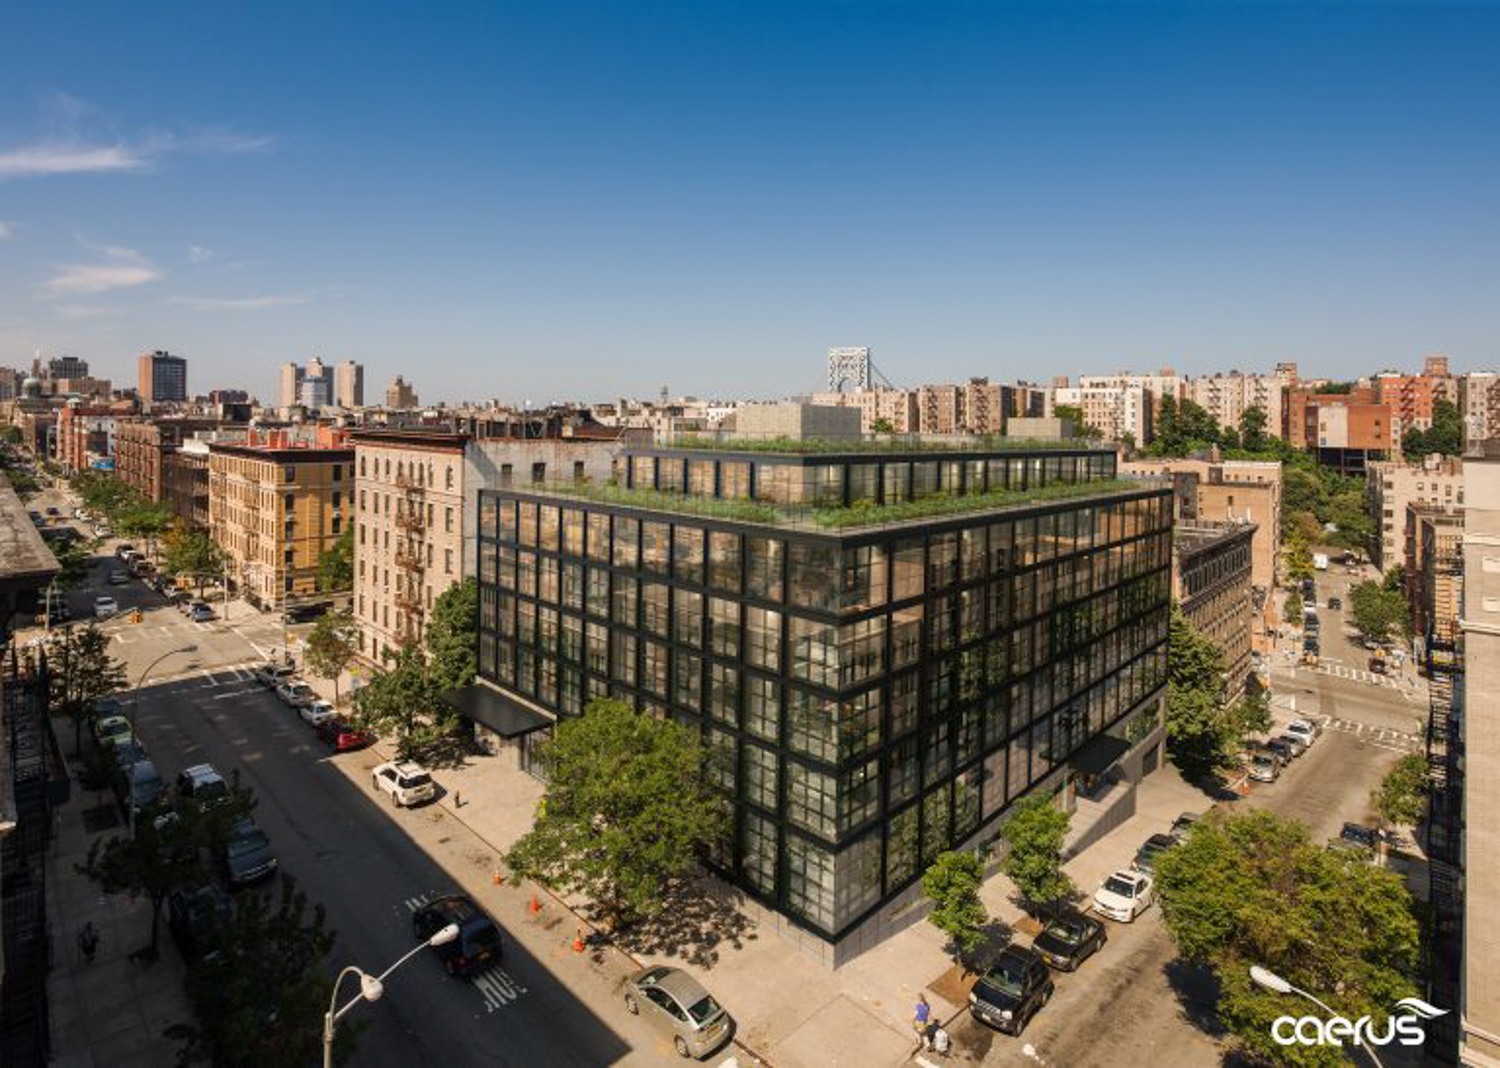 212 Wadsworth Avenue, rendering by the Caerus Group